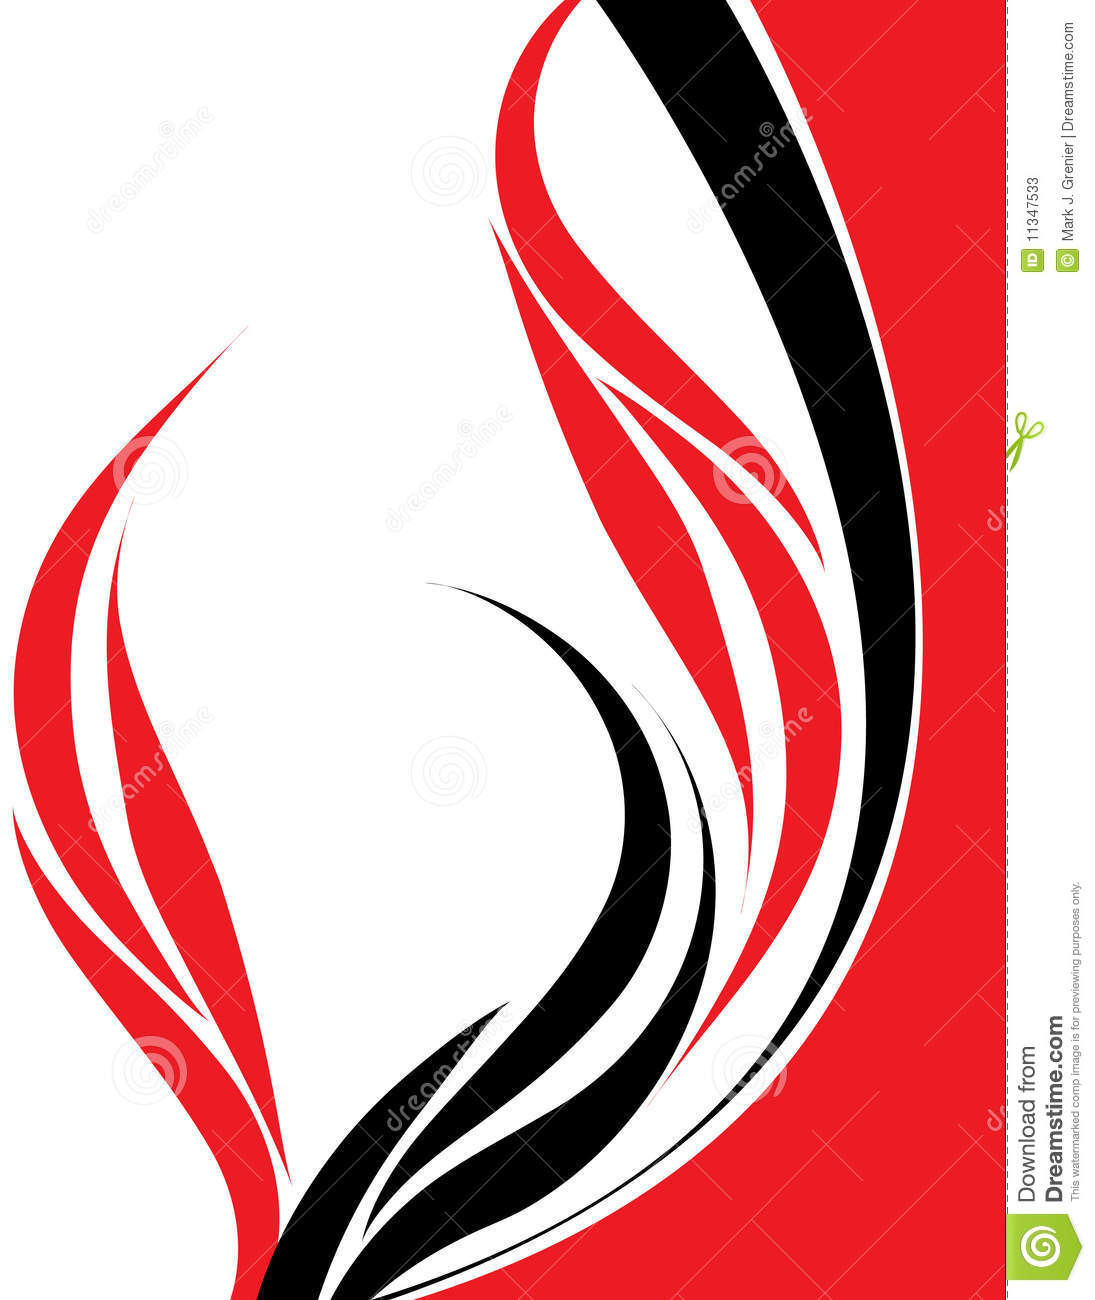 Red Black And White Background Designs Black and red 1095x1300